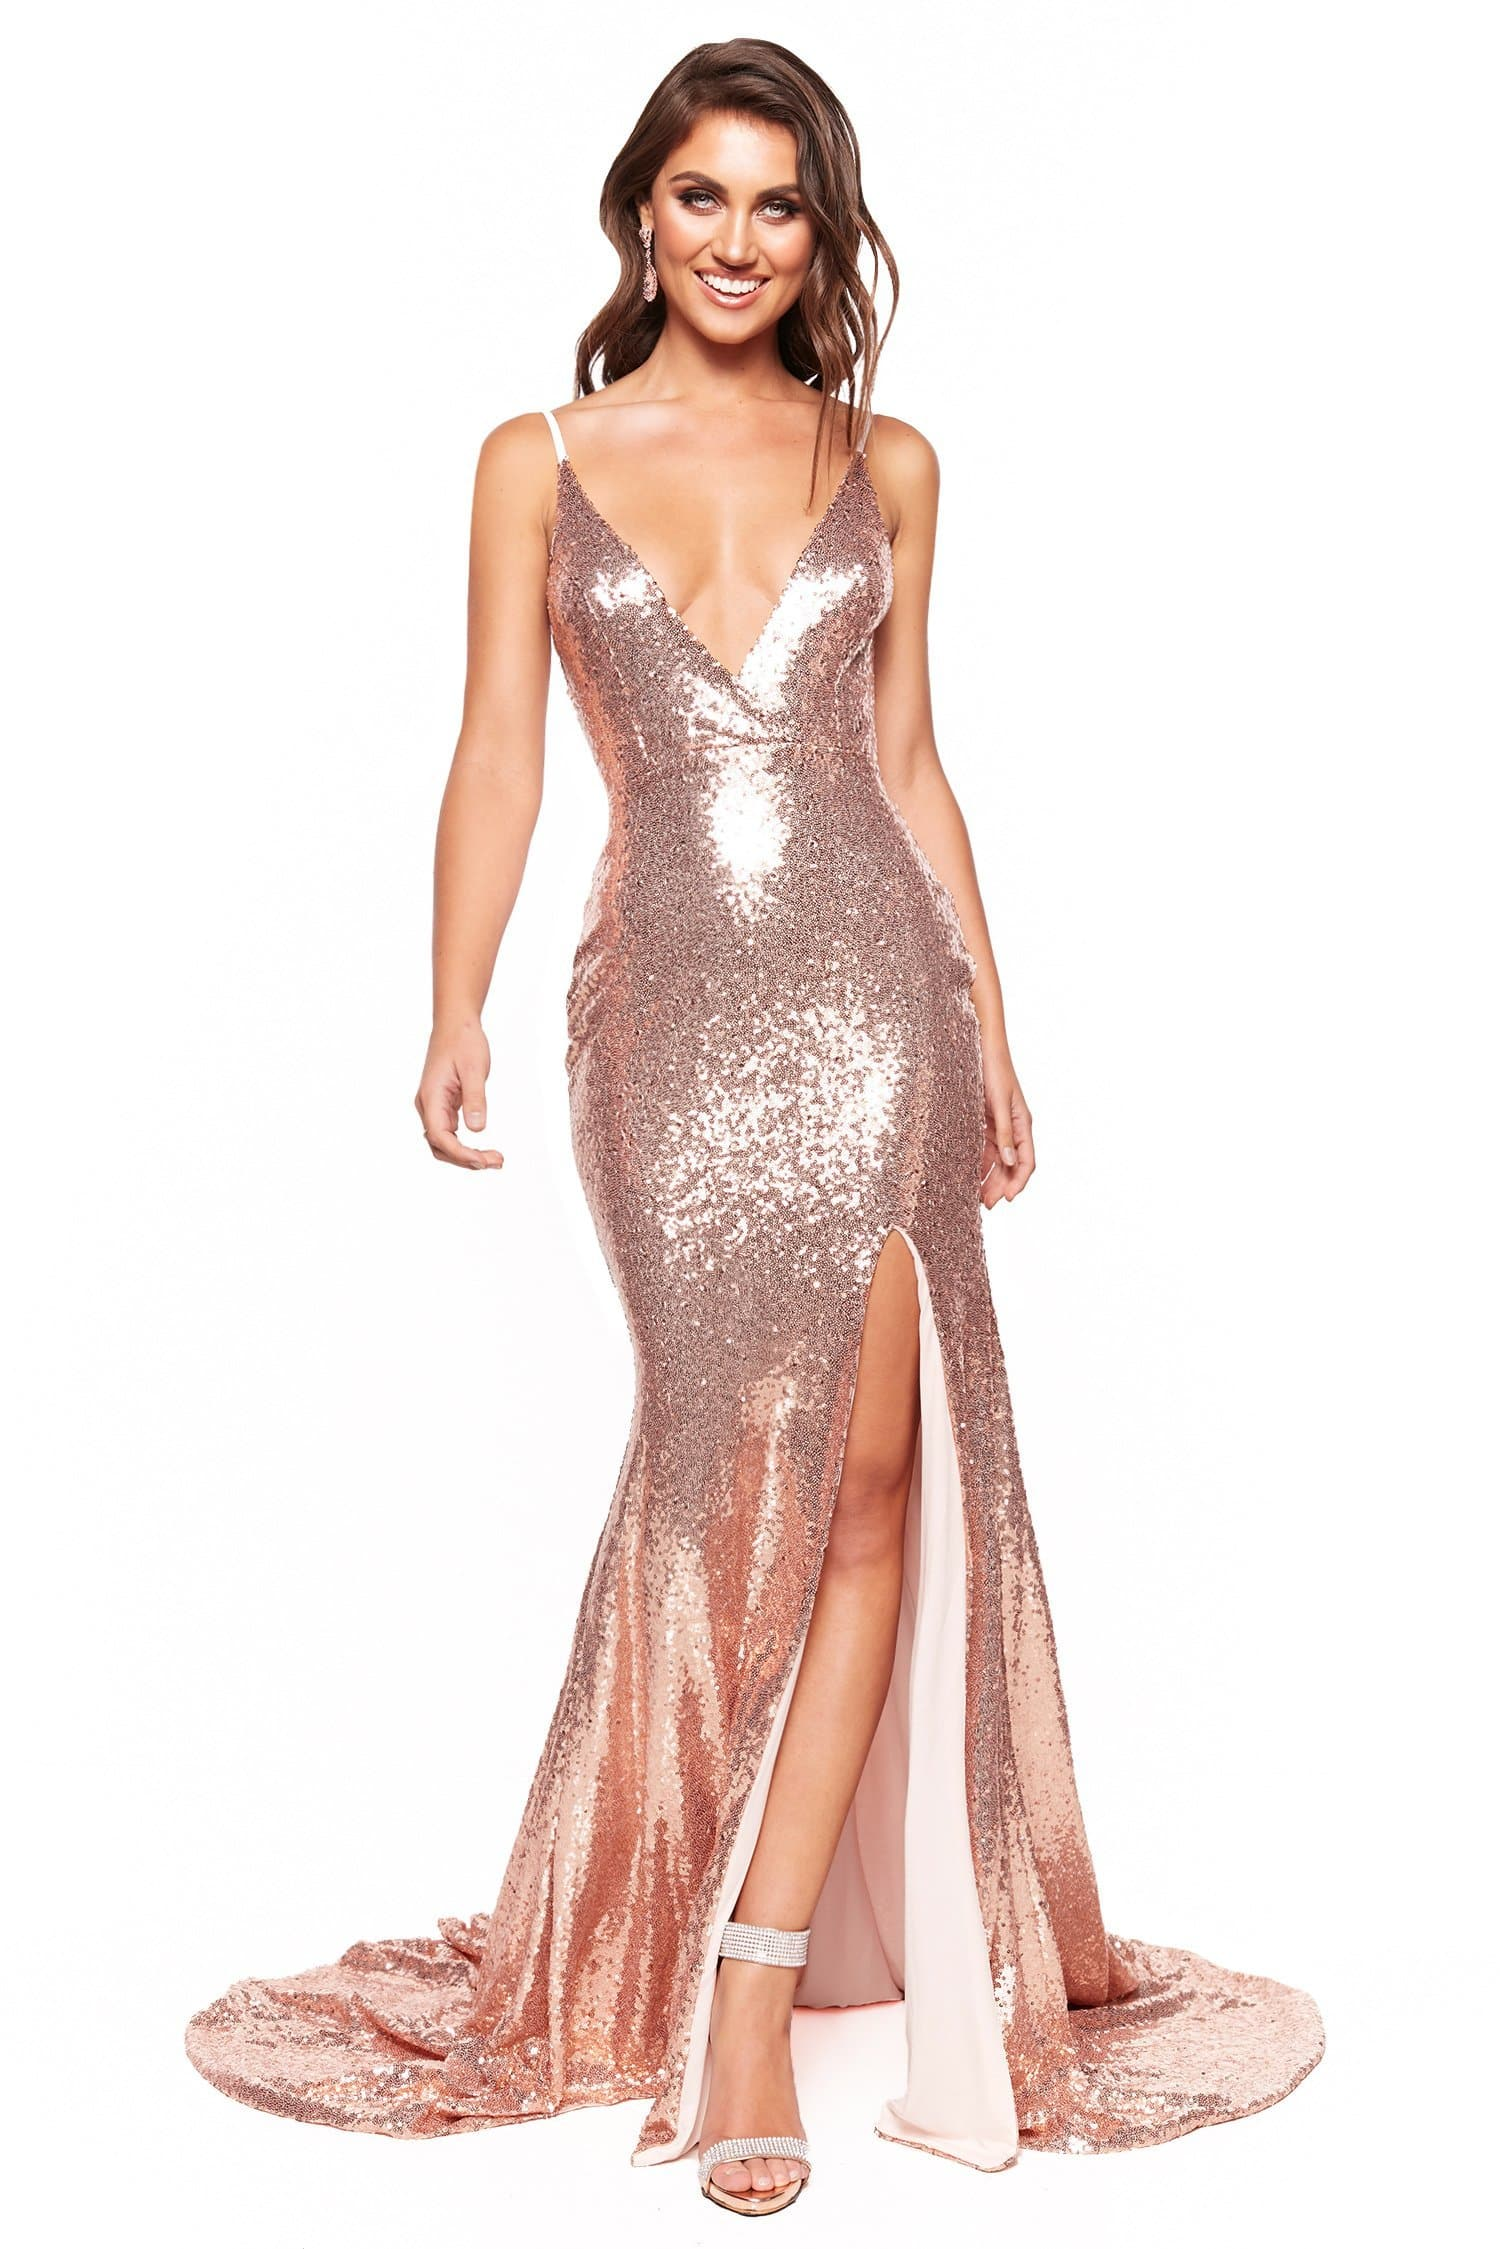 A&N Luxe Hailey - Rose Gold Plunge Neck Mermaid Sequin Gown with Slit